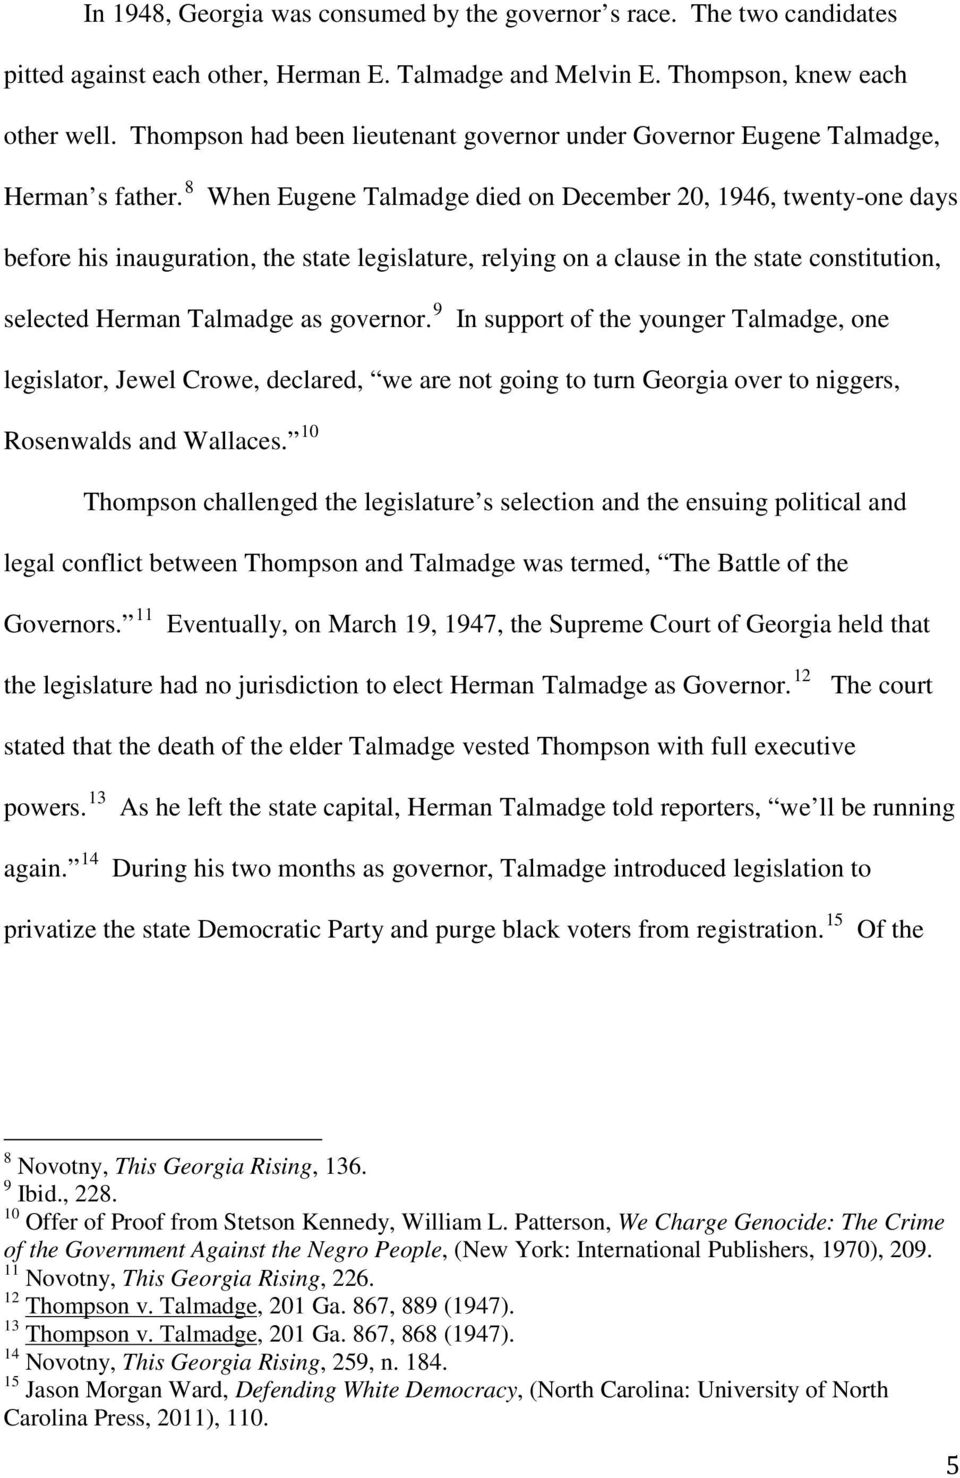 8 When Eugene Talmadge died on December 20, 1946, twenty-one days before his inauguration, the state legislature, relying on a clause in the state constitution, selected Herman Talmadge as governor.